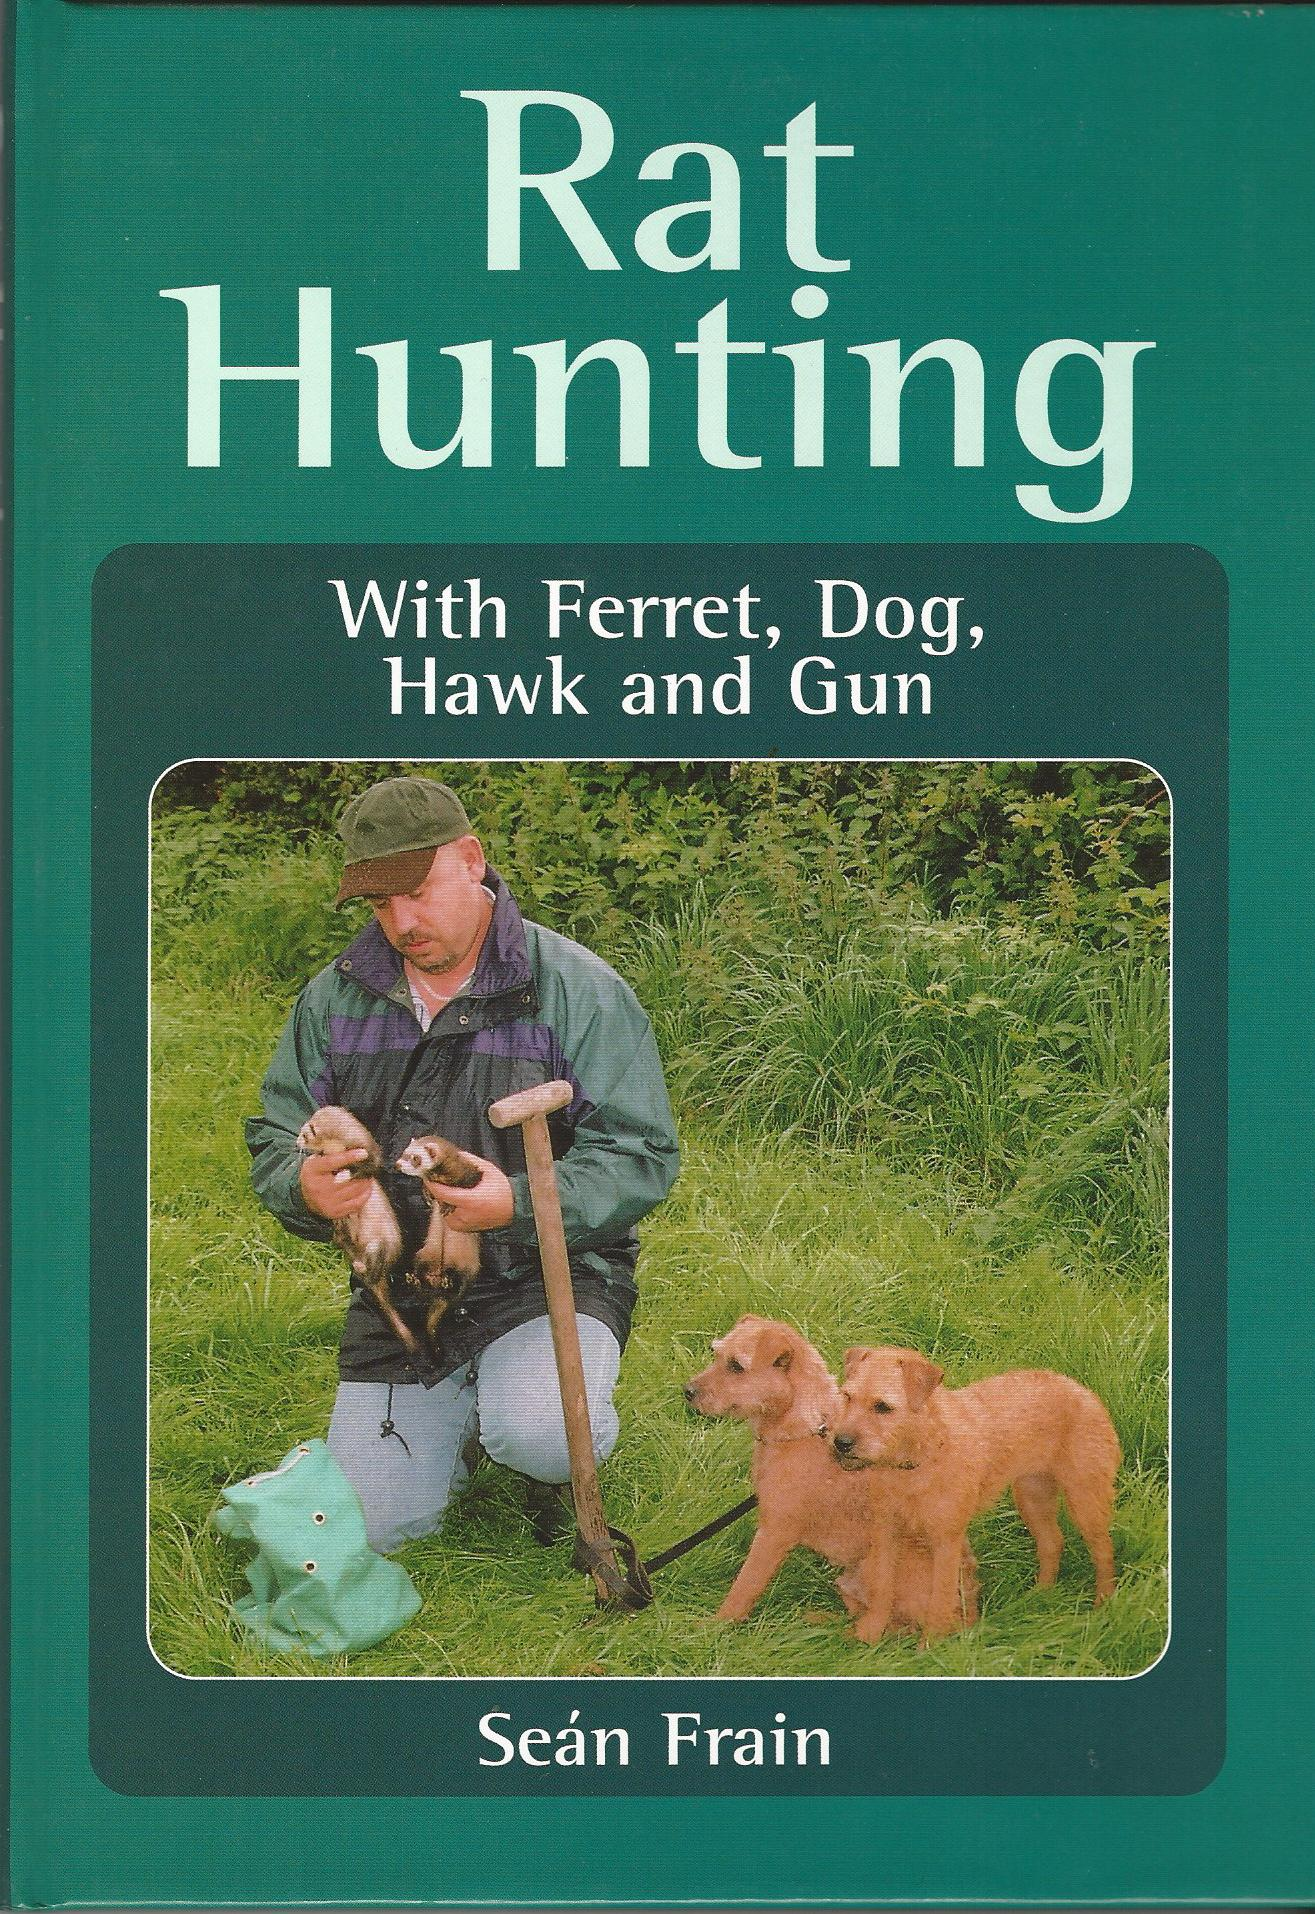 Image for Rat Hunting with Ferret, Dog, Hawk and Gun.